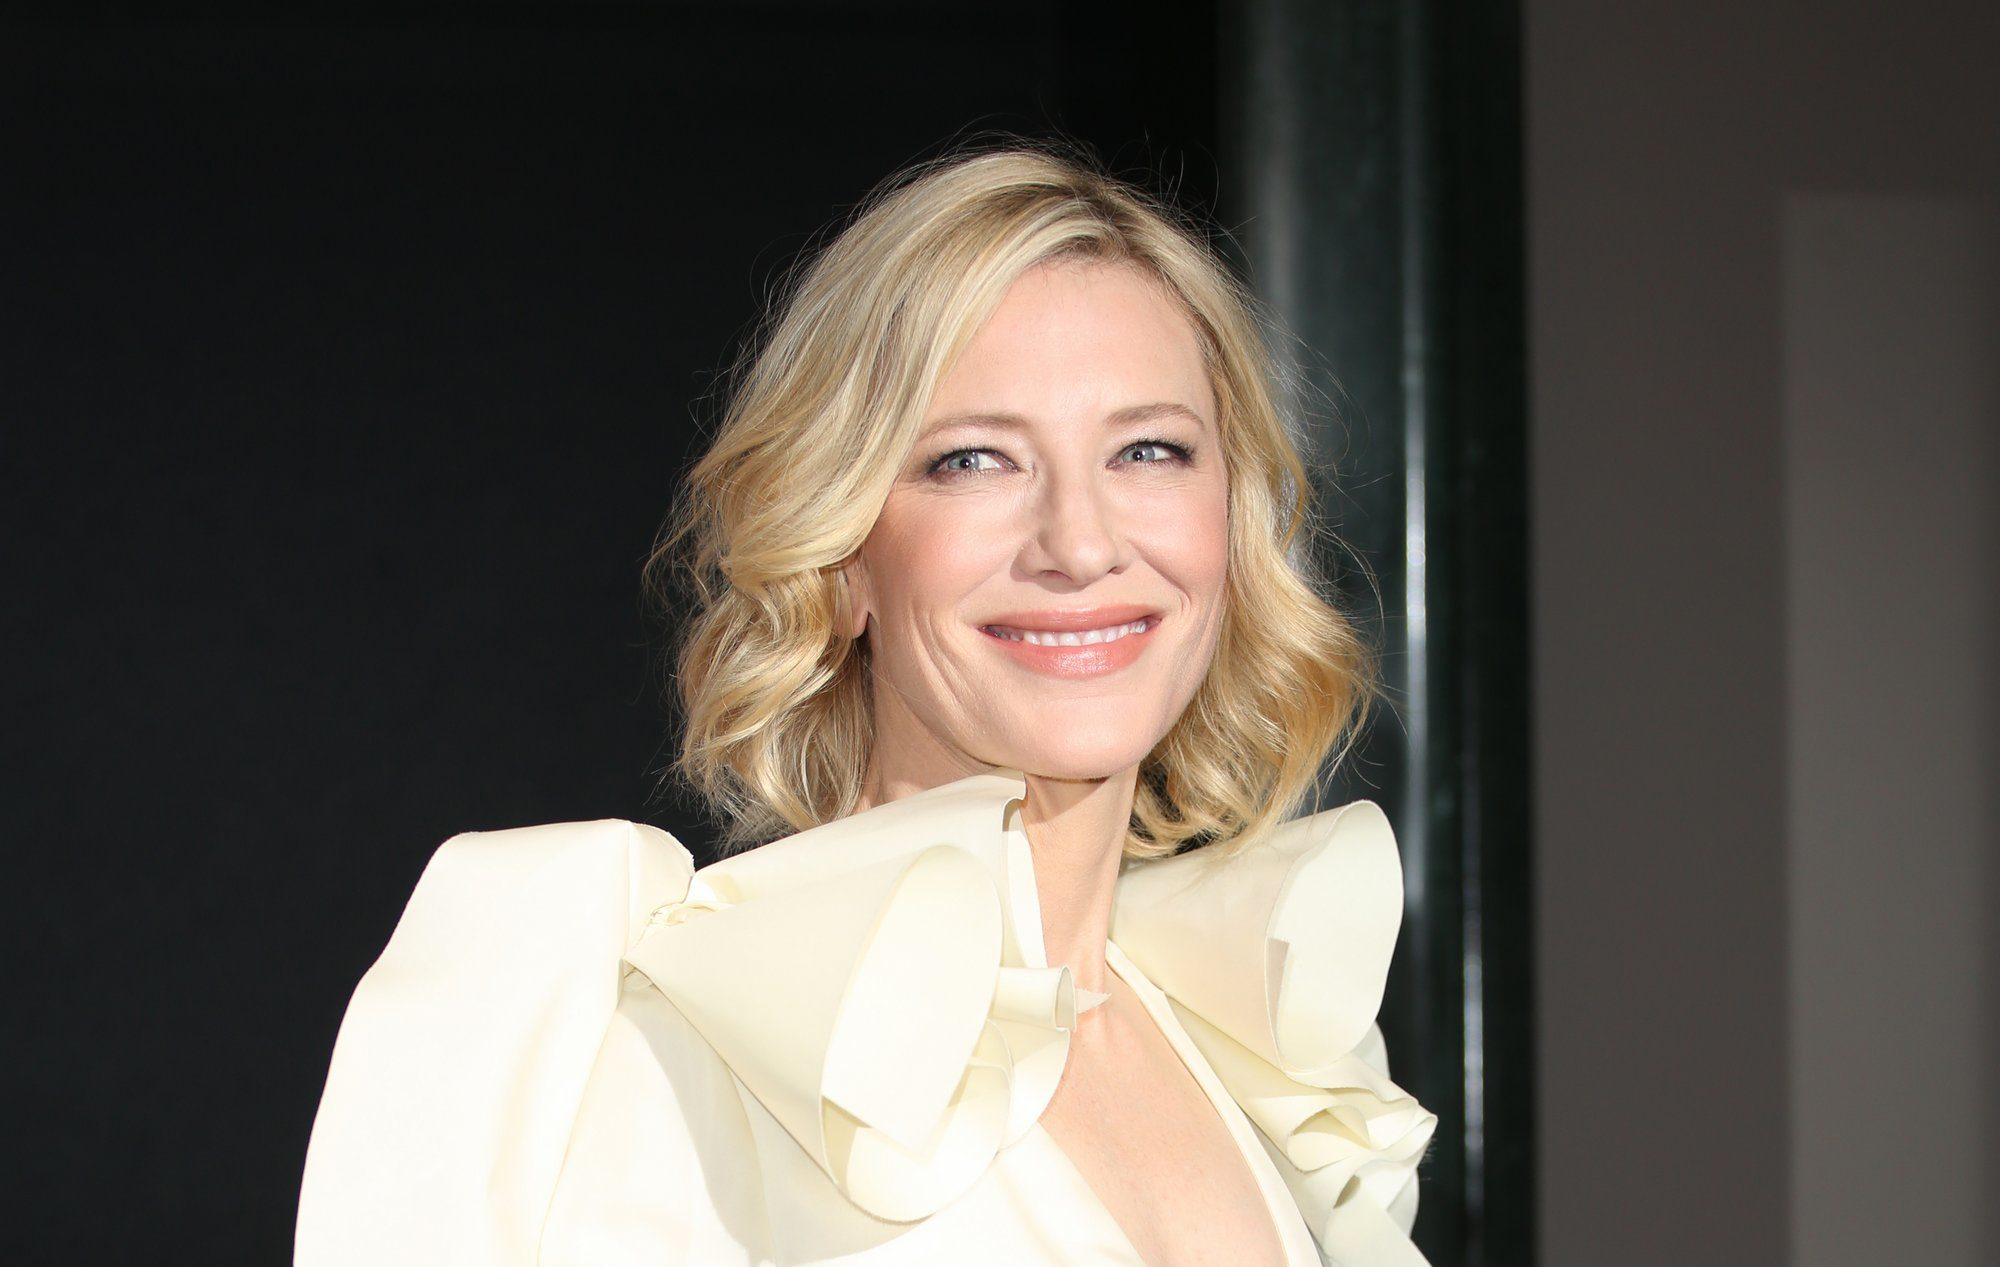 Cate Blanchett on Ocean's Eight, Thor: Ragnarok, Where'd You Go, Bernadette, playing Lucille Ball and her Broadway debut